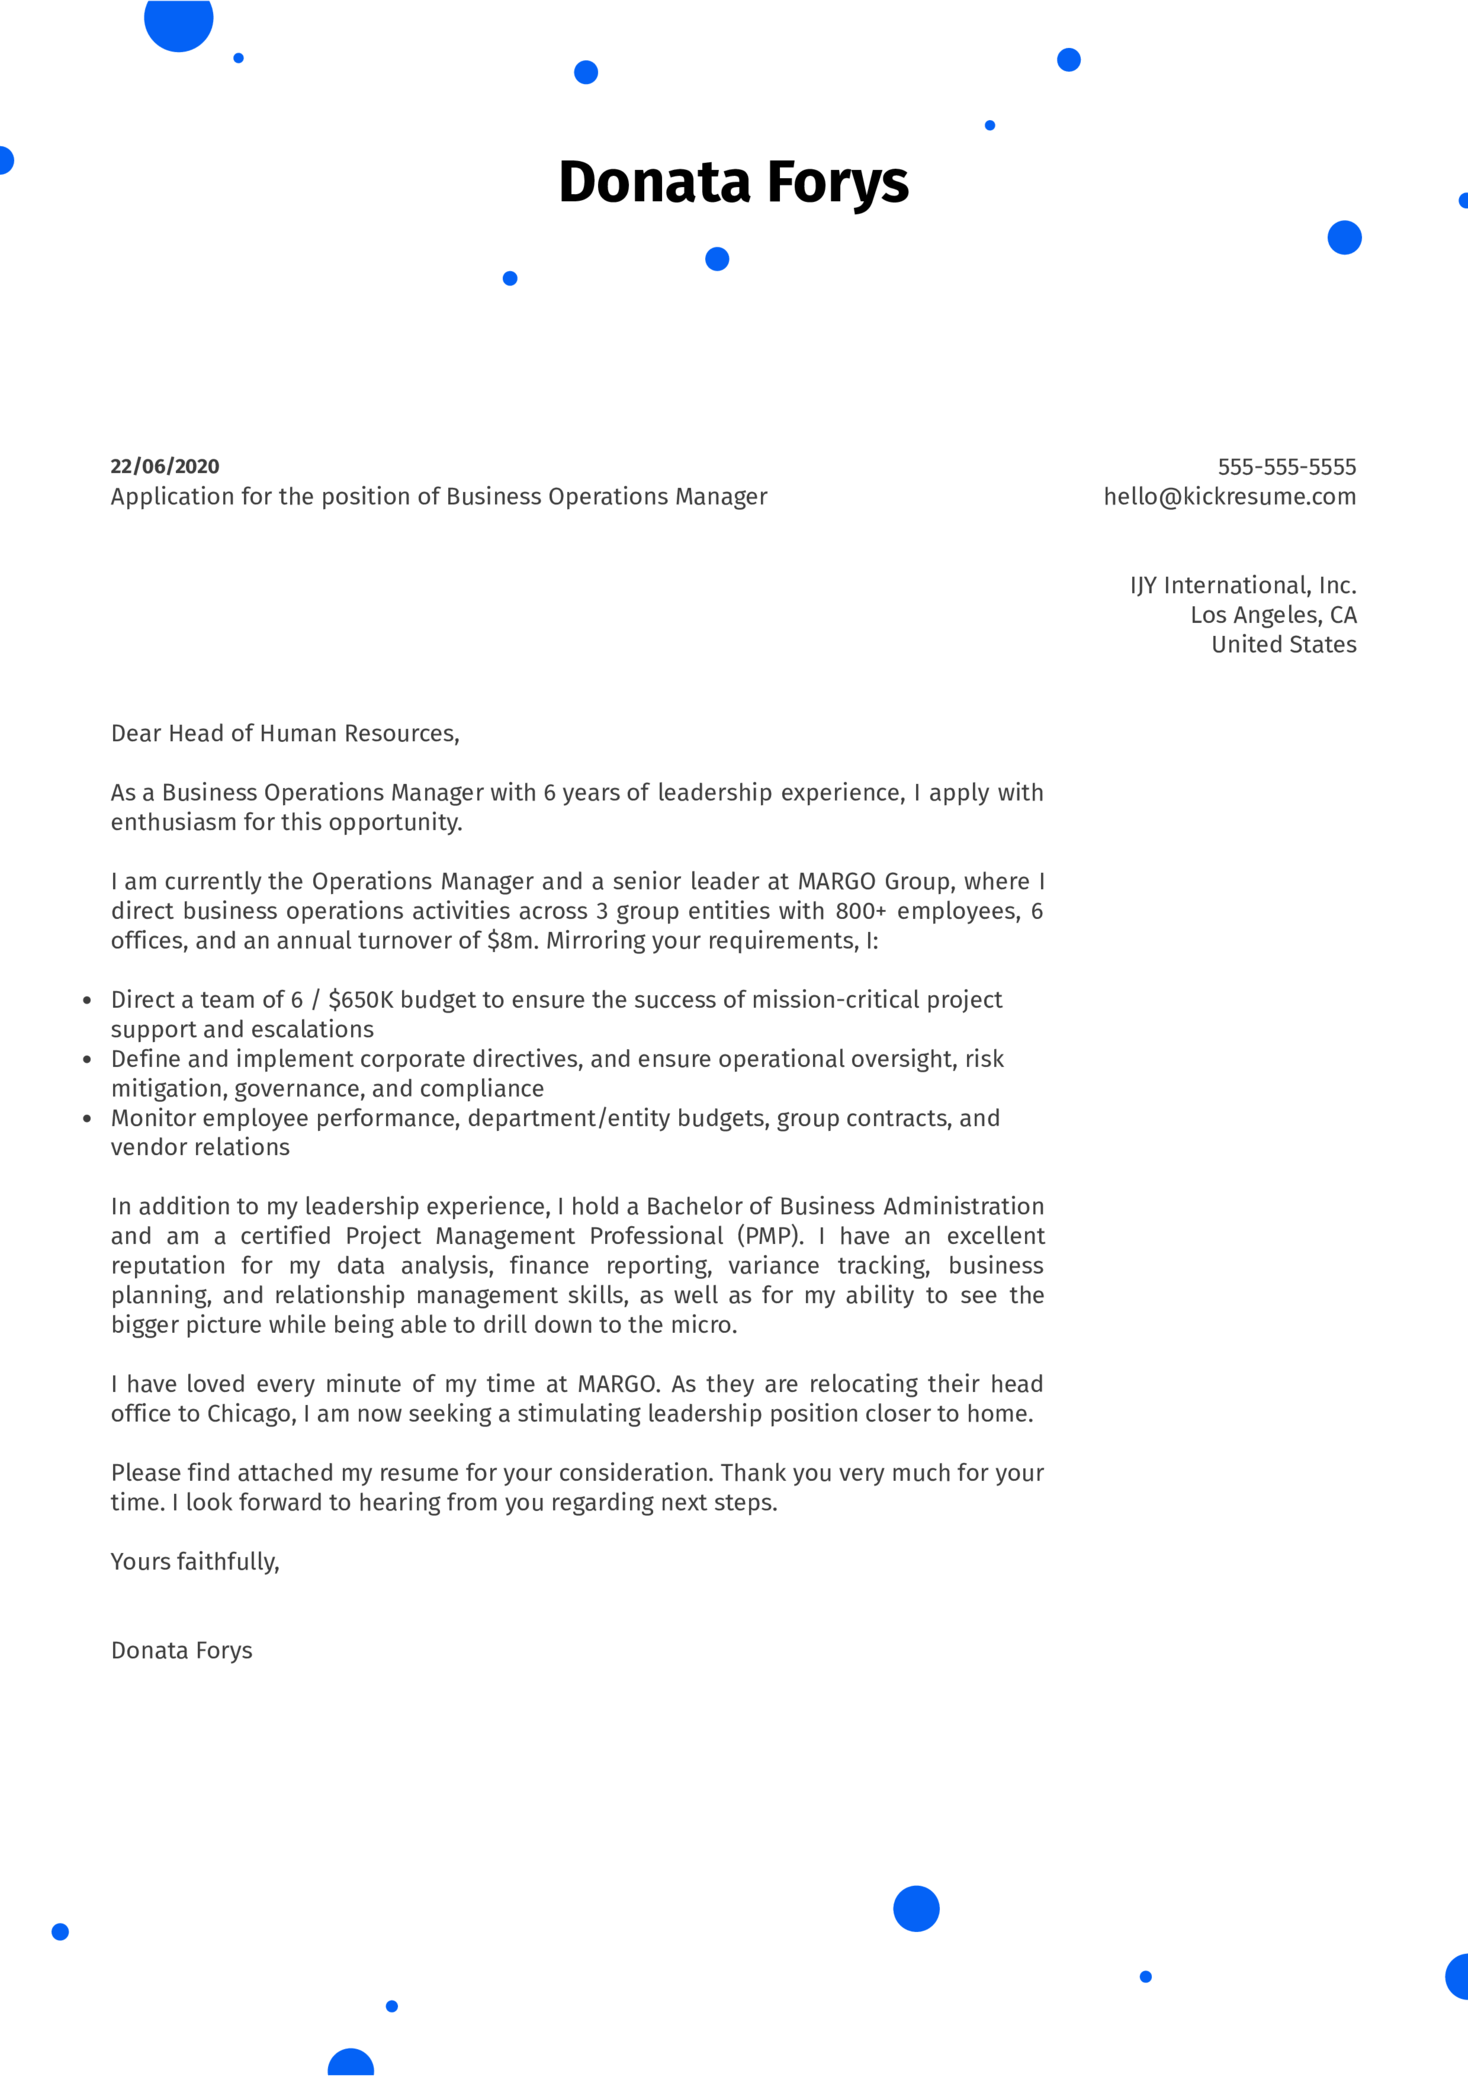 Cover Letter Academic Job from s3-eu-west-1.amazonaws.com